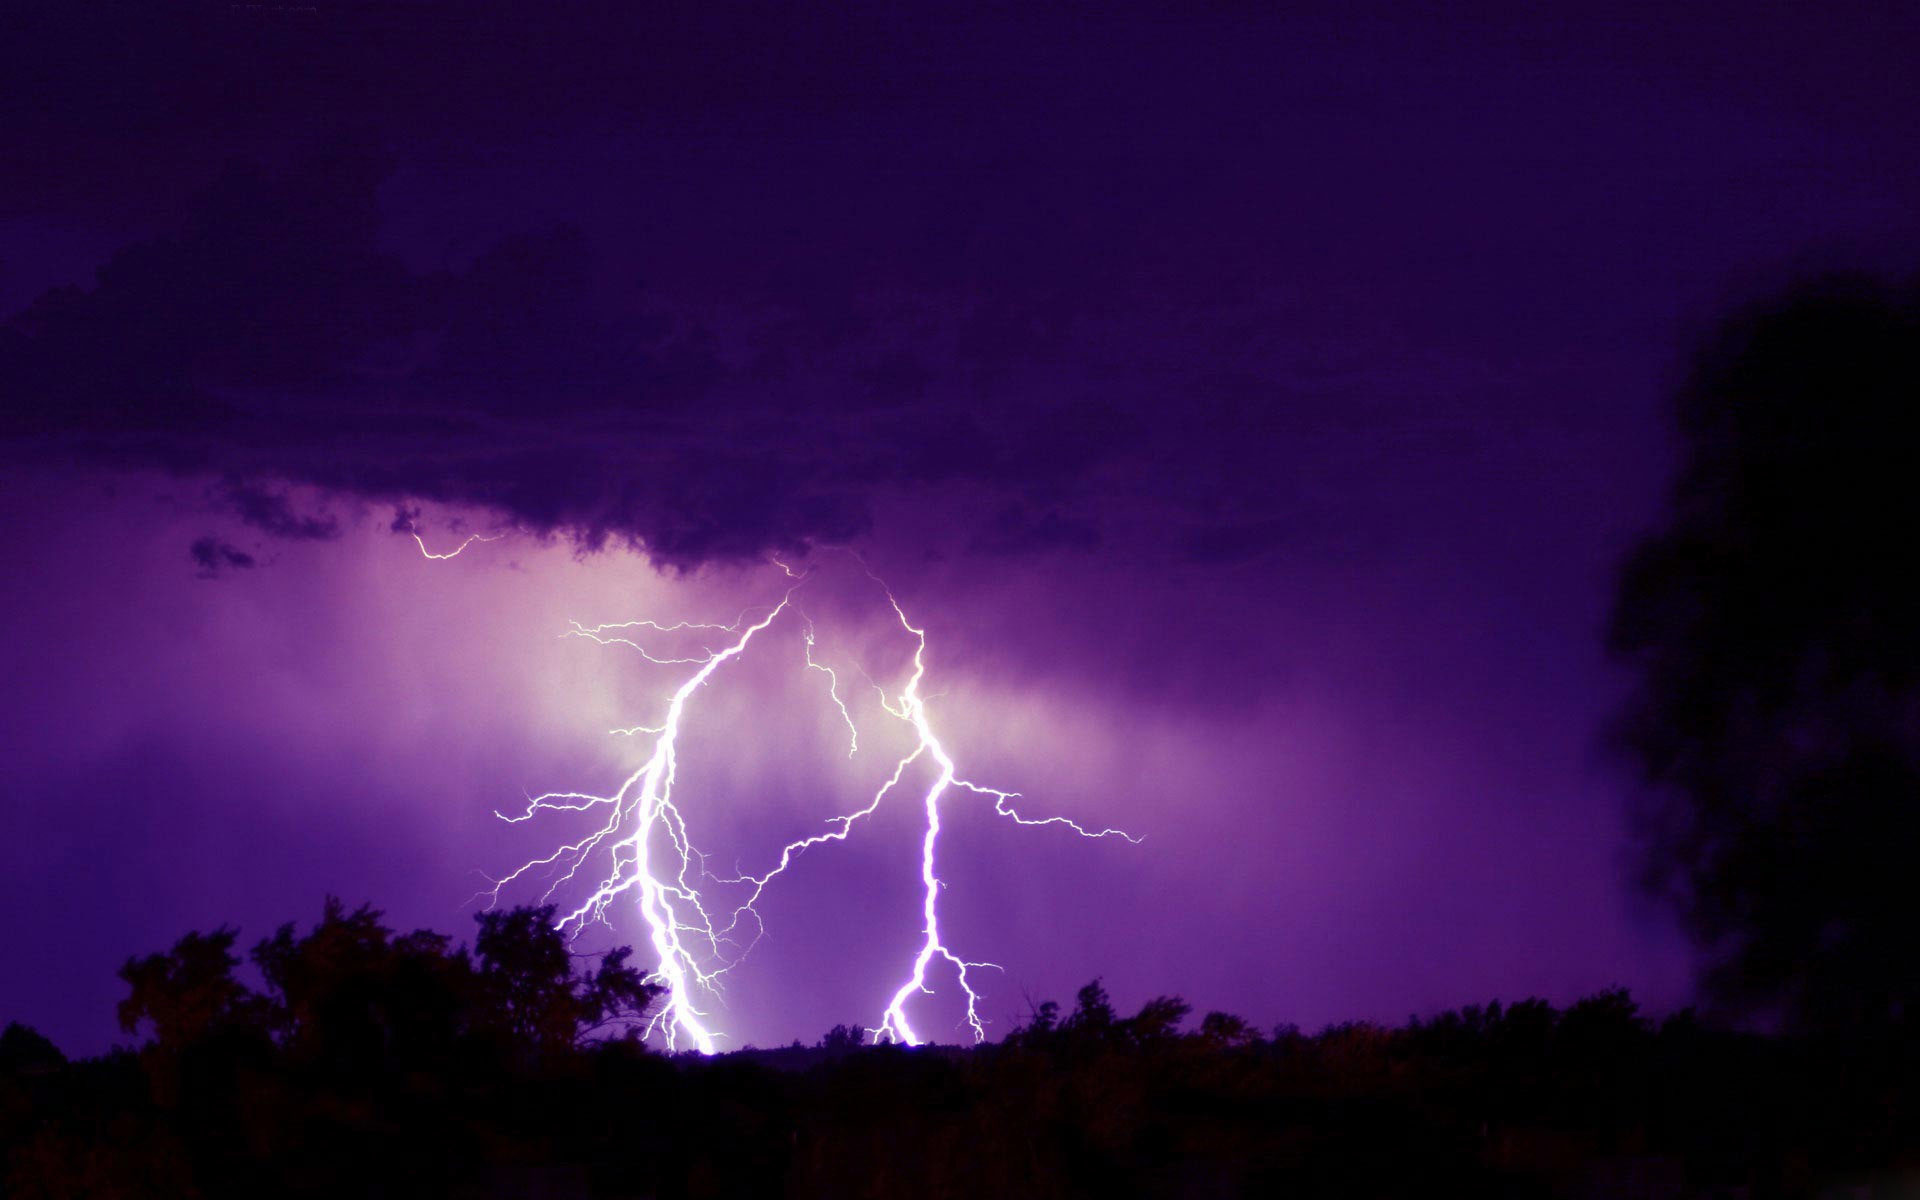 tornado lightning storm live wallpaper for android With Resolutions .